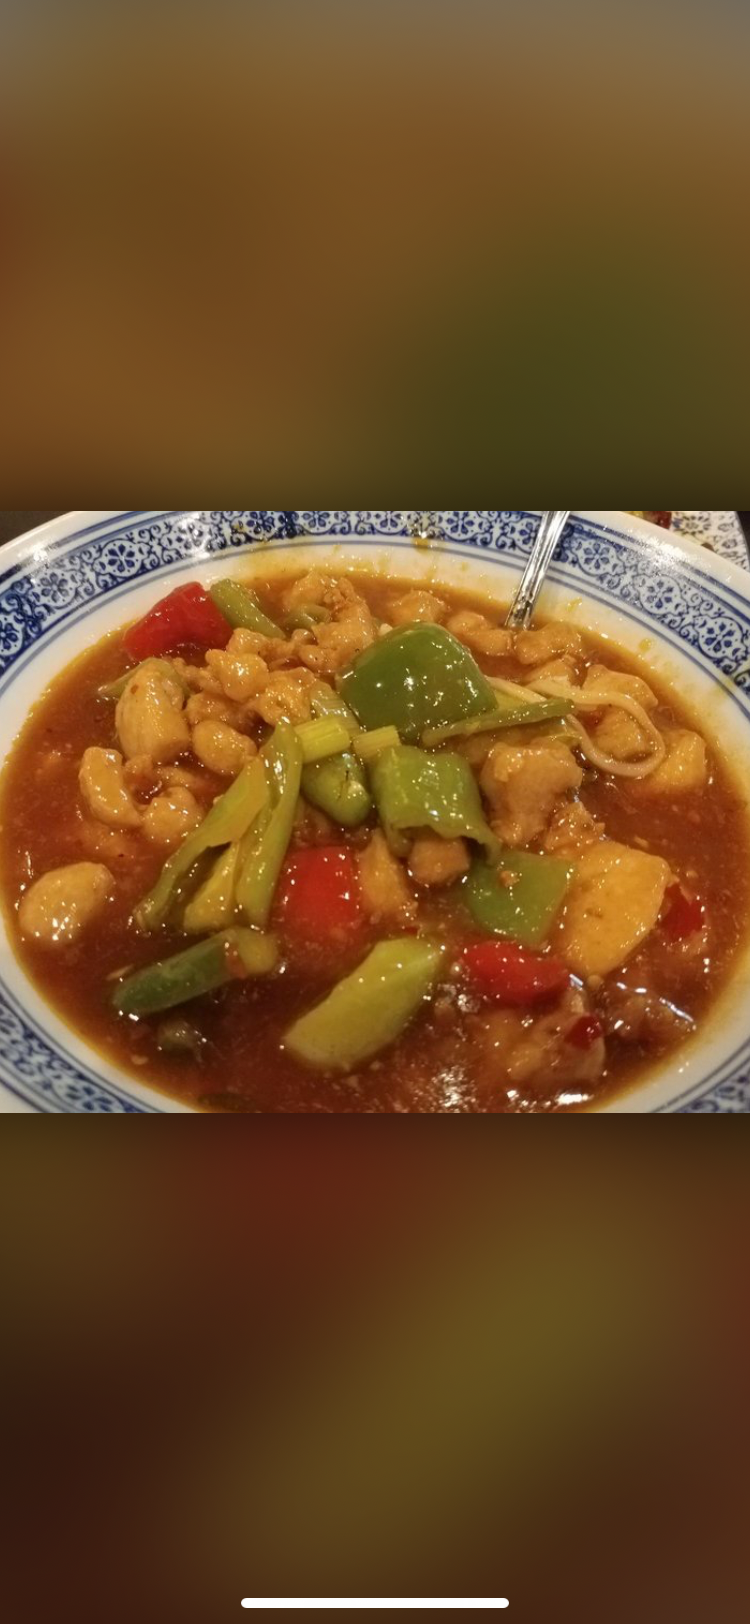 54. Double Pepper Chicken Noodle 双椒鸡丁面 Image